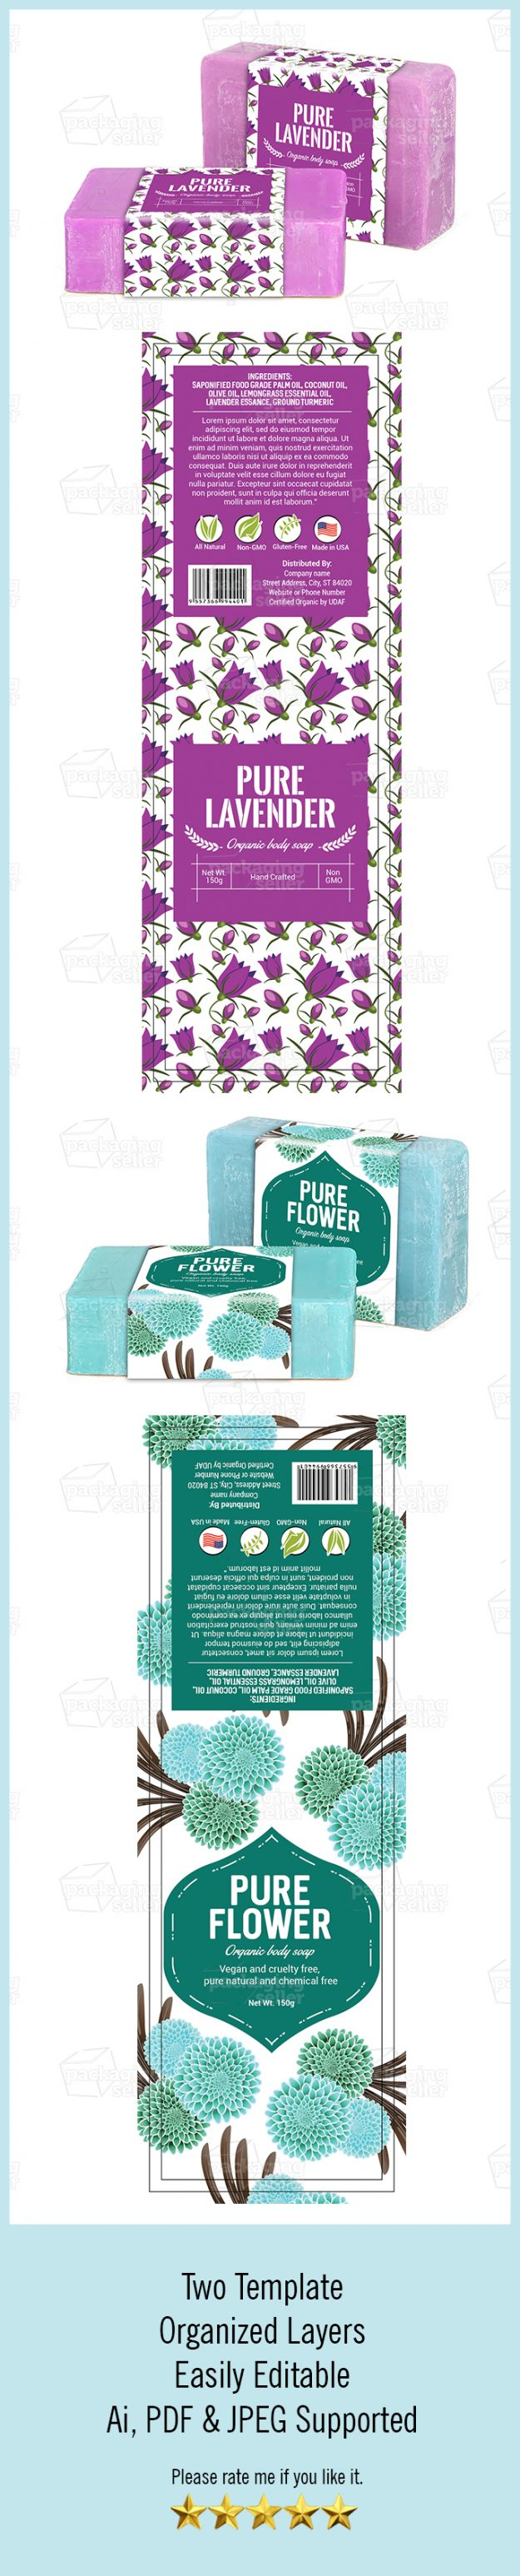 Handmade Soap Packaging Template Vol-146- Graphic Services